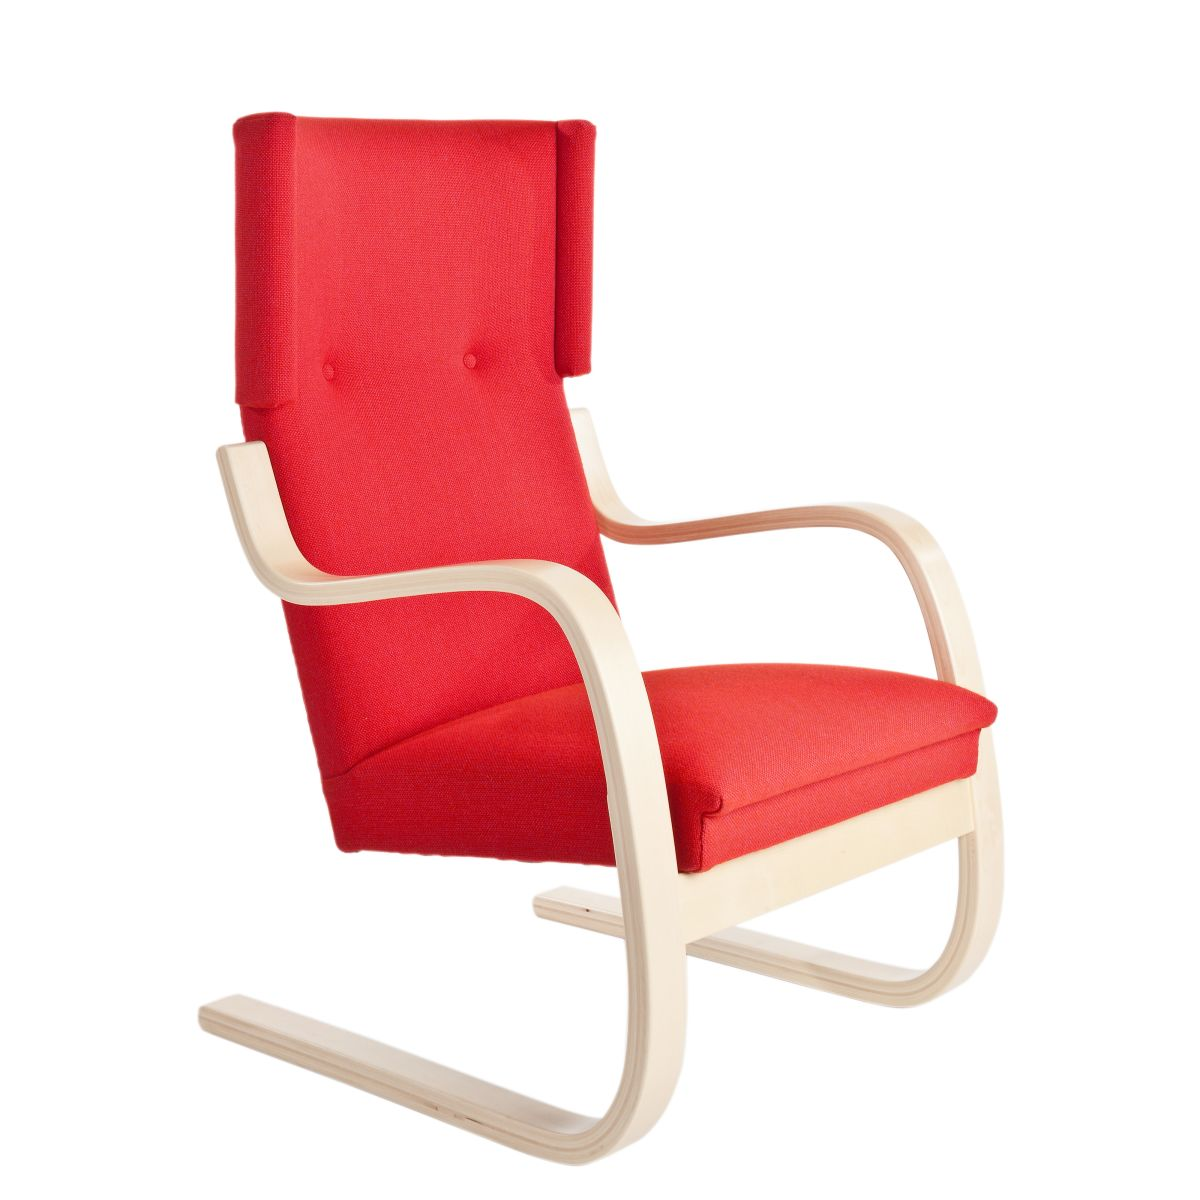 Armchair 401 red